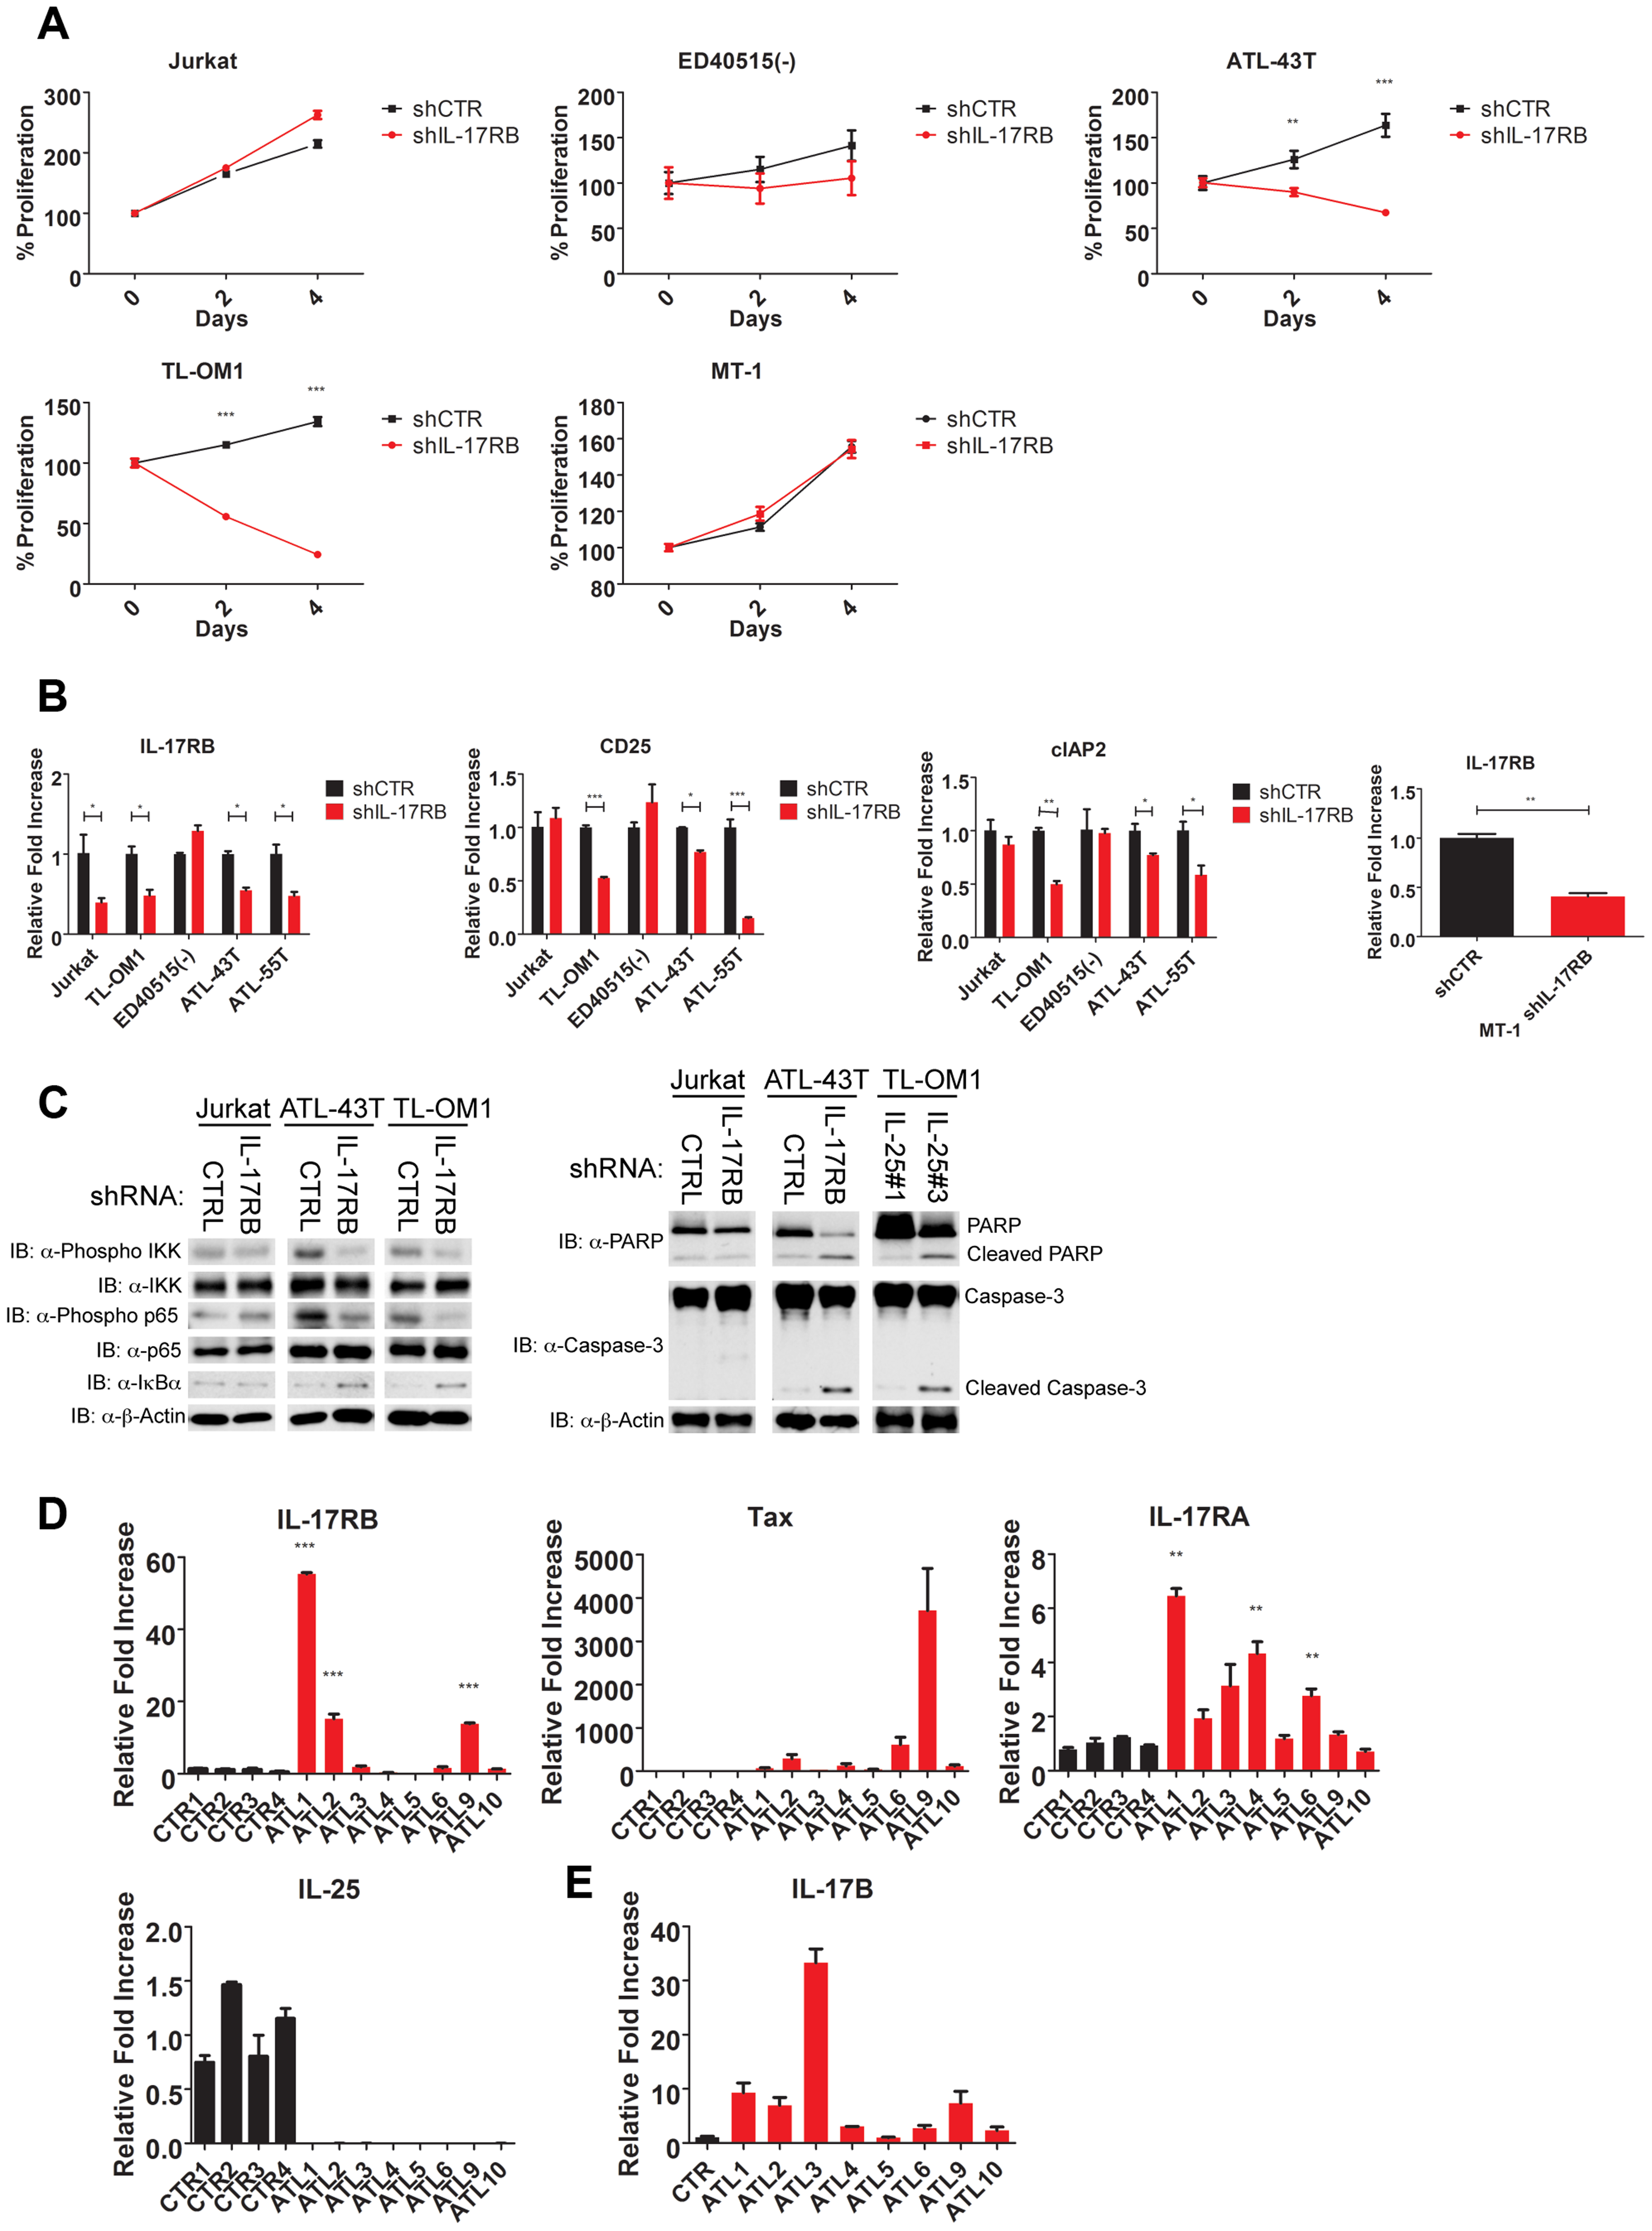 IL-17RB is essential for NF-κB activation and survival in a subset of Tax-negative ATL cell lines.